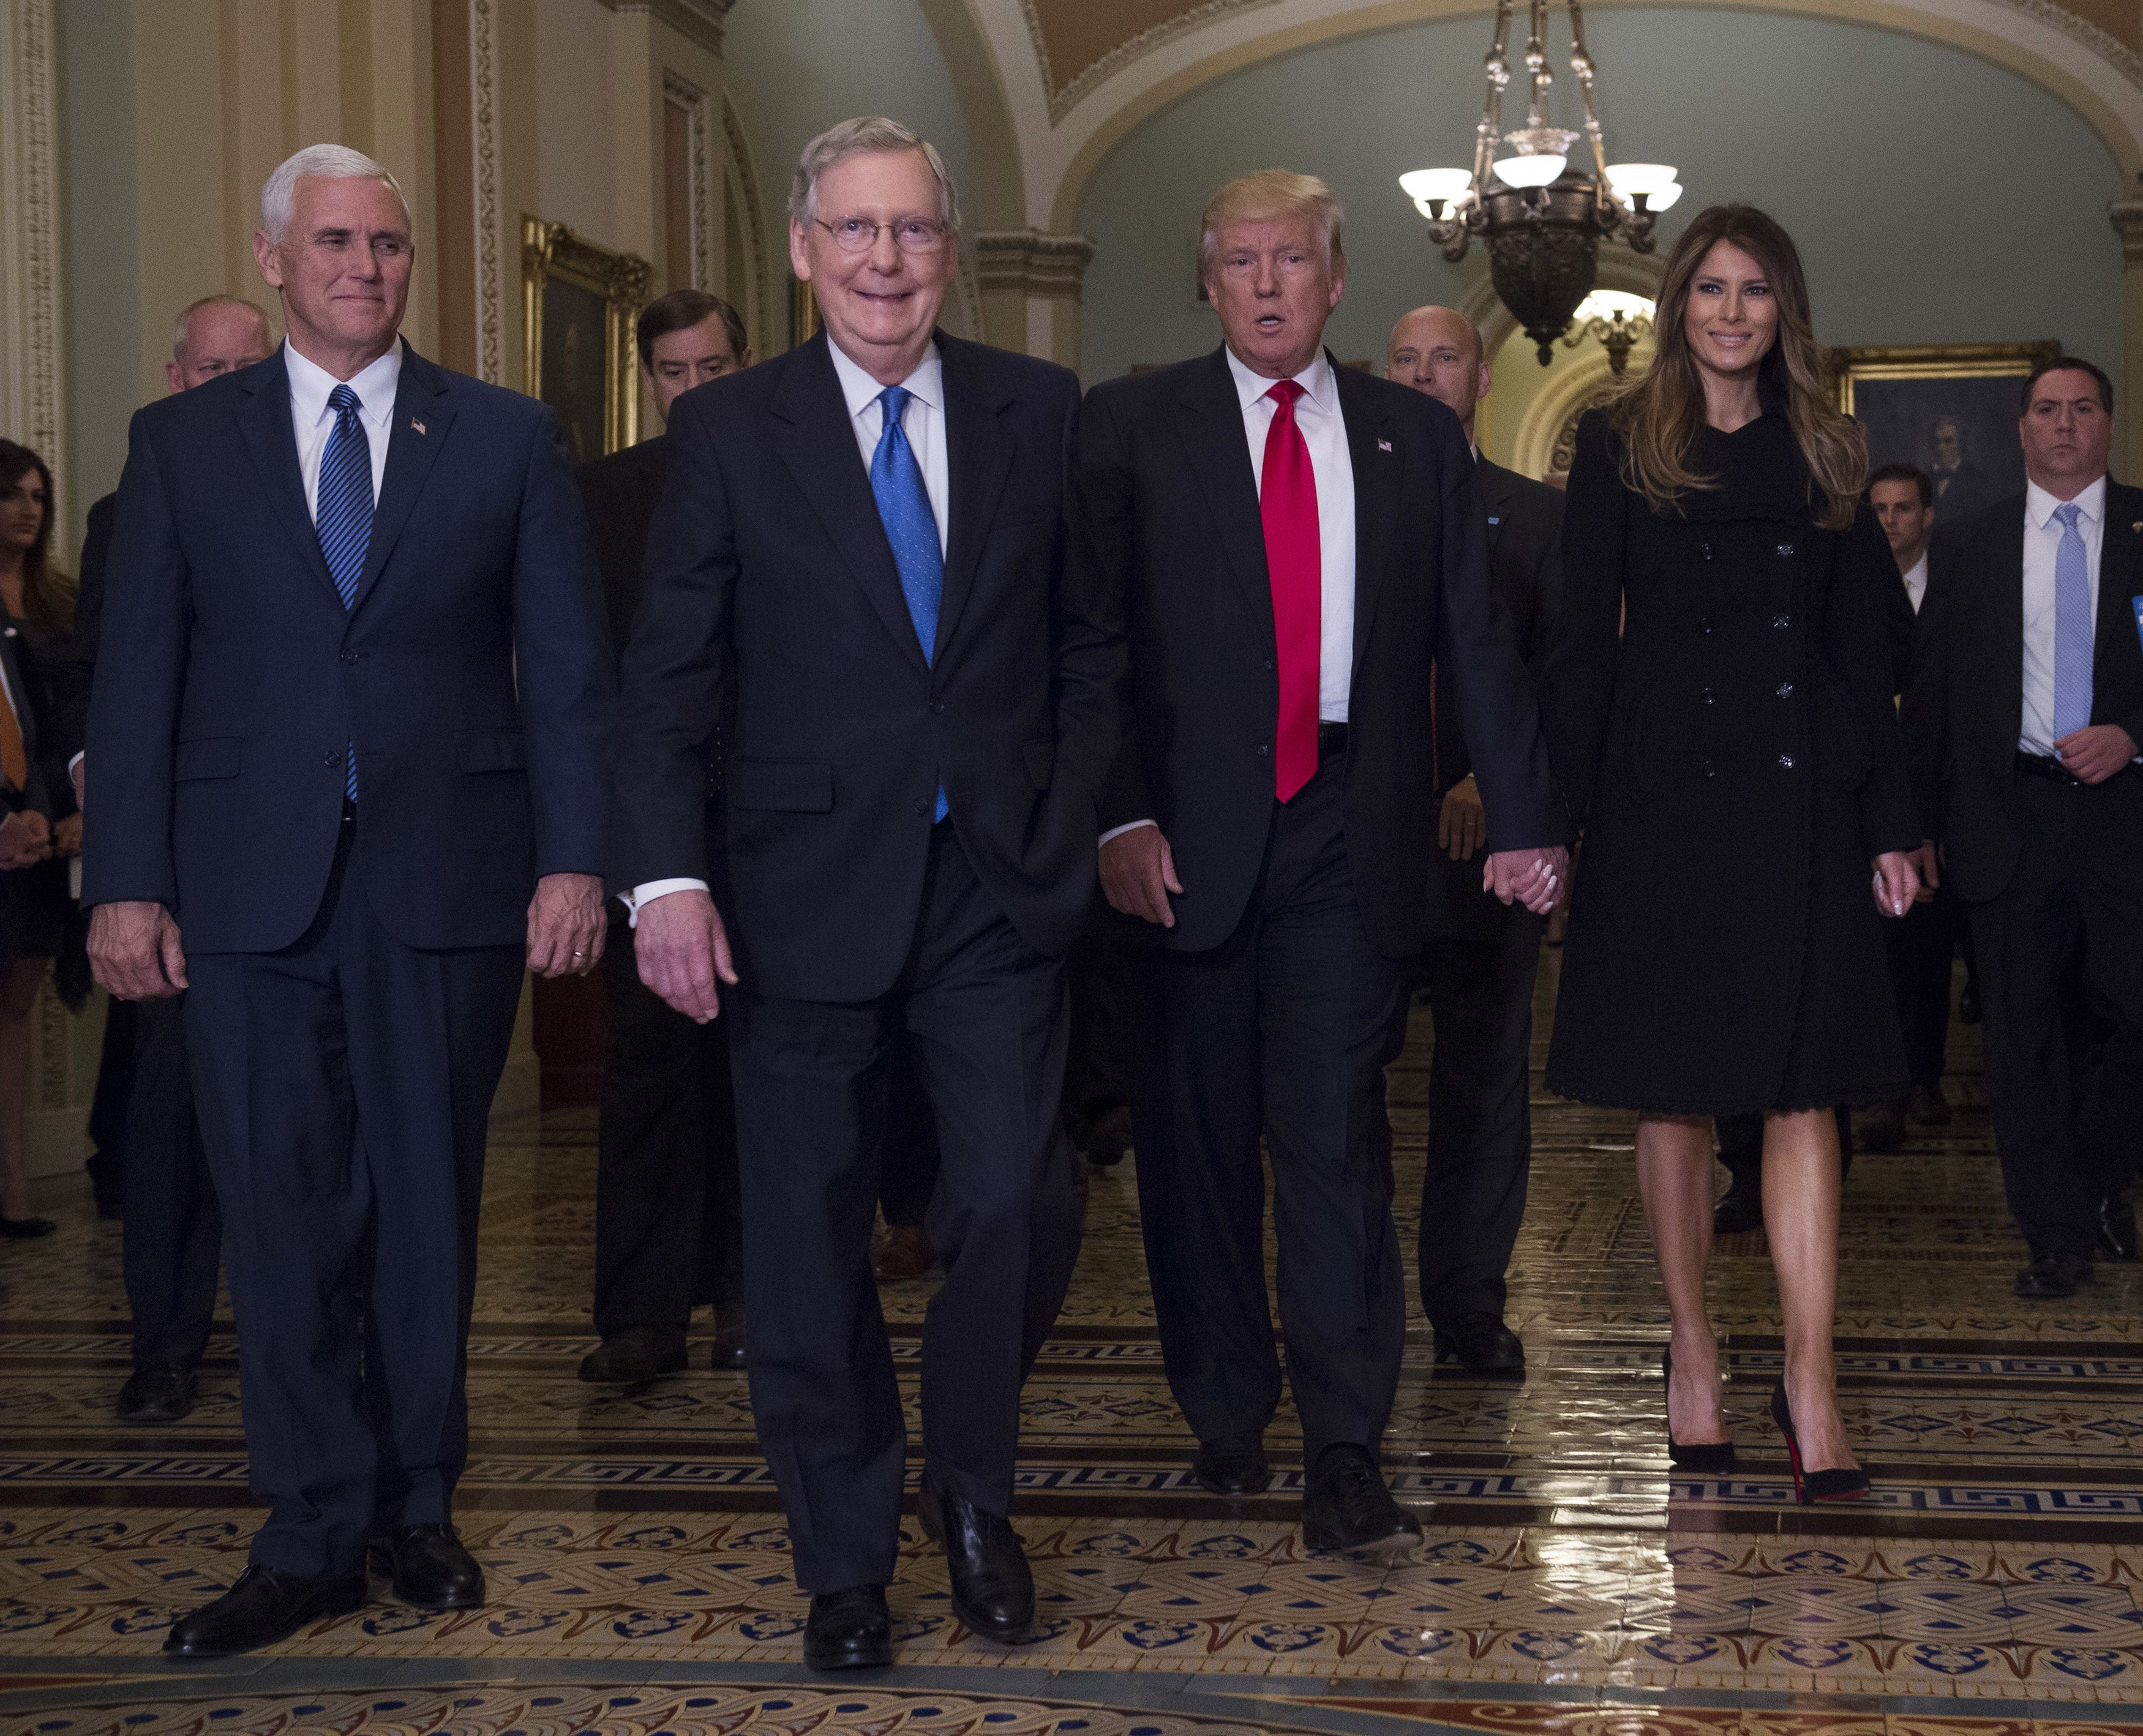 Vice President-elect Mike Pence, Senate Majority Leader Mitch McConnell, President-elect Donald Trump and Melania Trump in the Capitol.